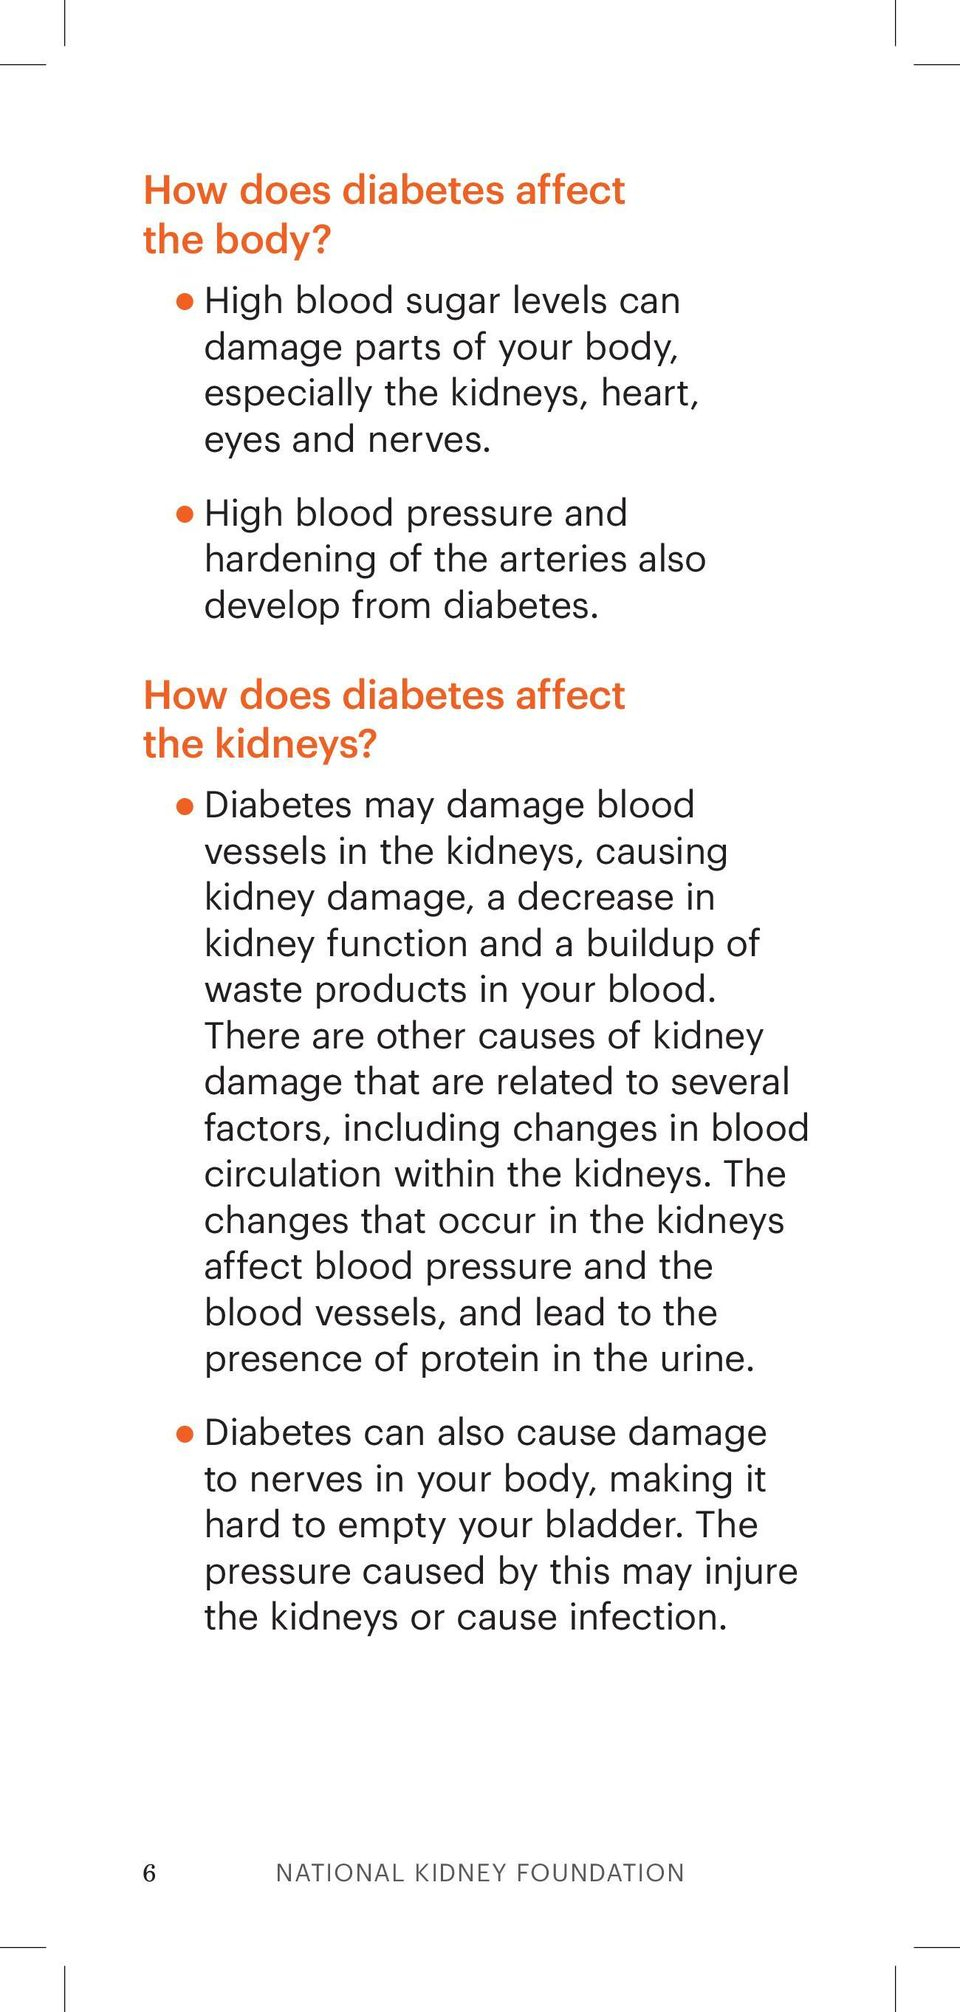 Diabetes may damage blood vessels in the kidneys, causing kidney damage, a decrease in kidney function and a buildup of waste products in your blood.